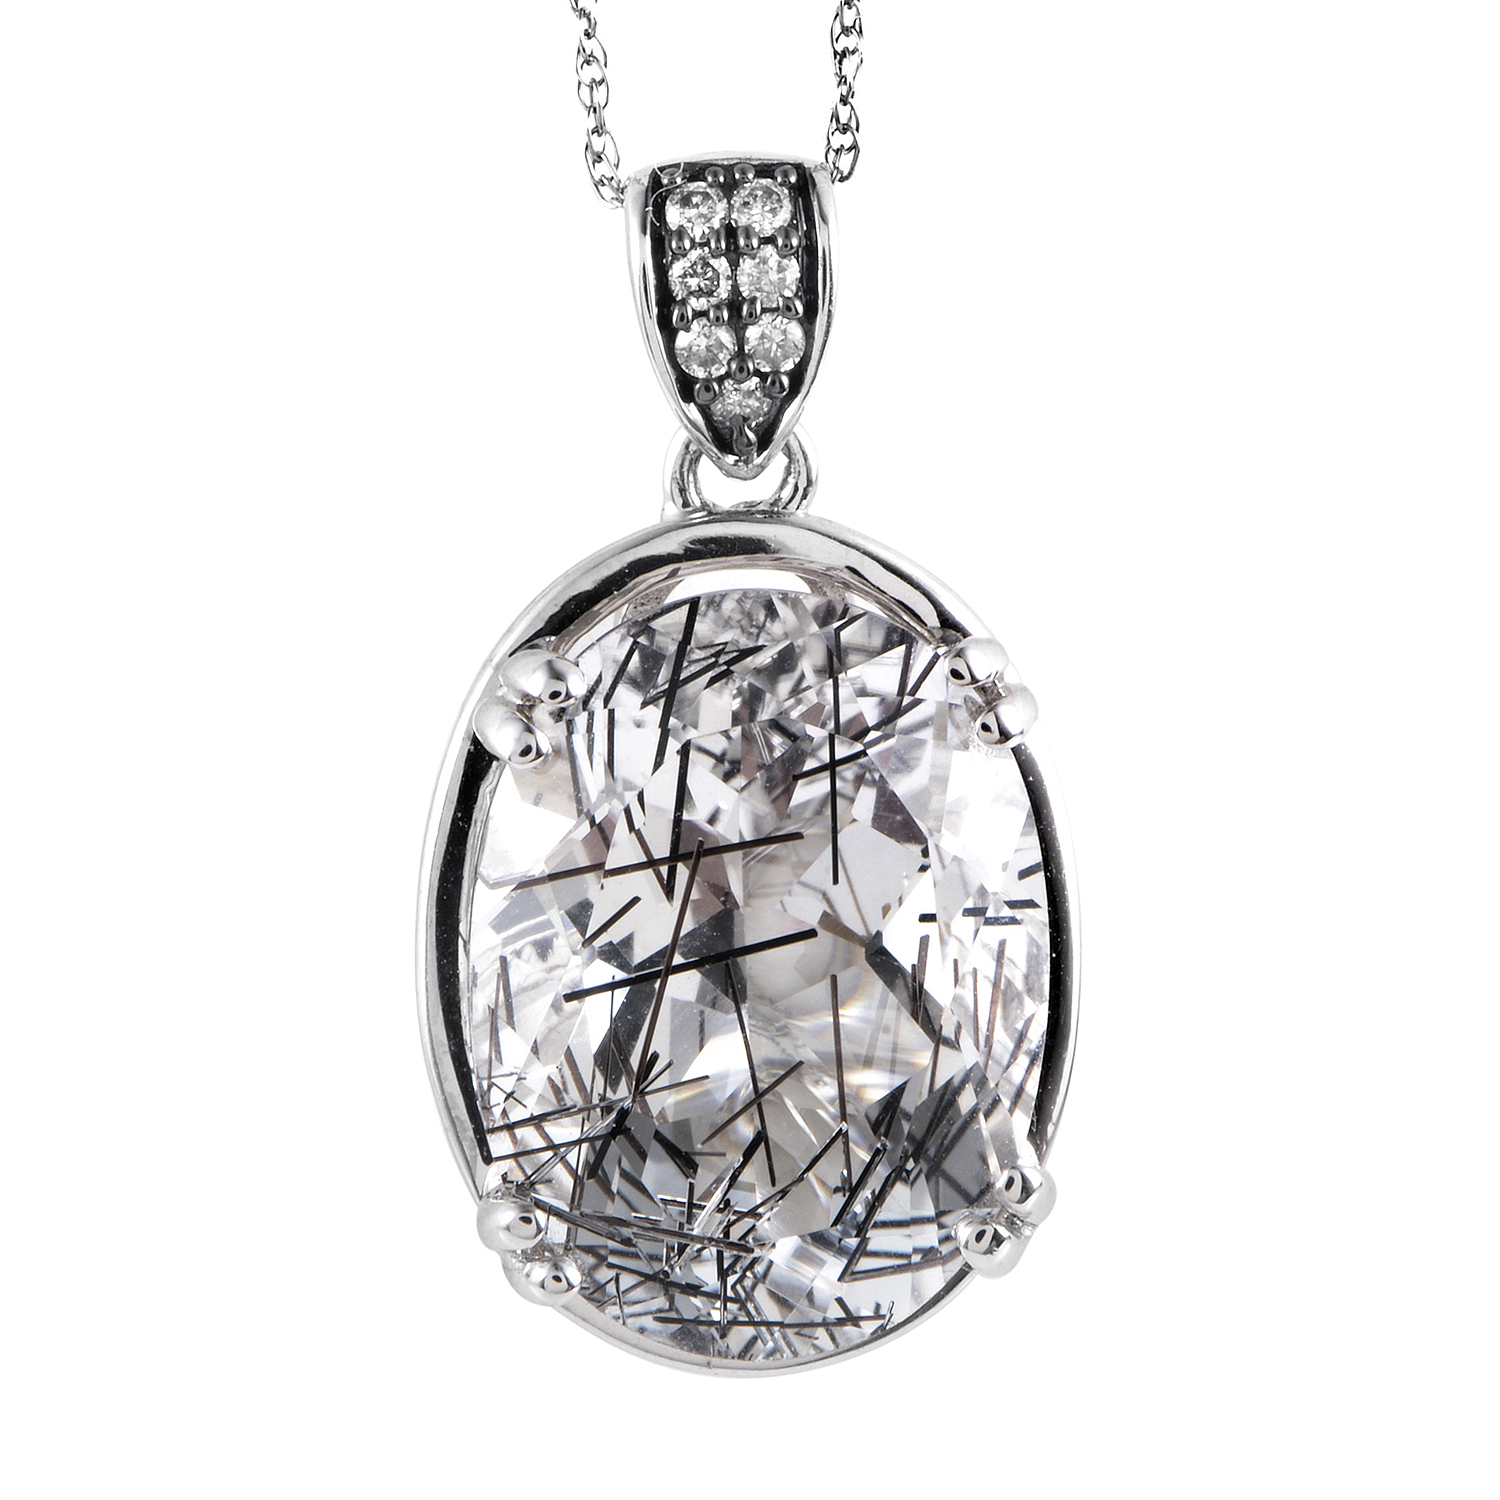 14K White Gold Diamond & Clear Quartz Pendant Necklace PD4-15239WQZ